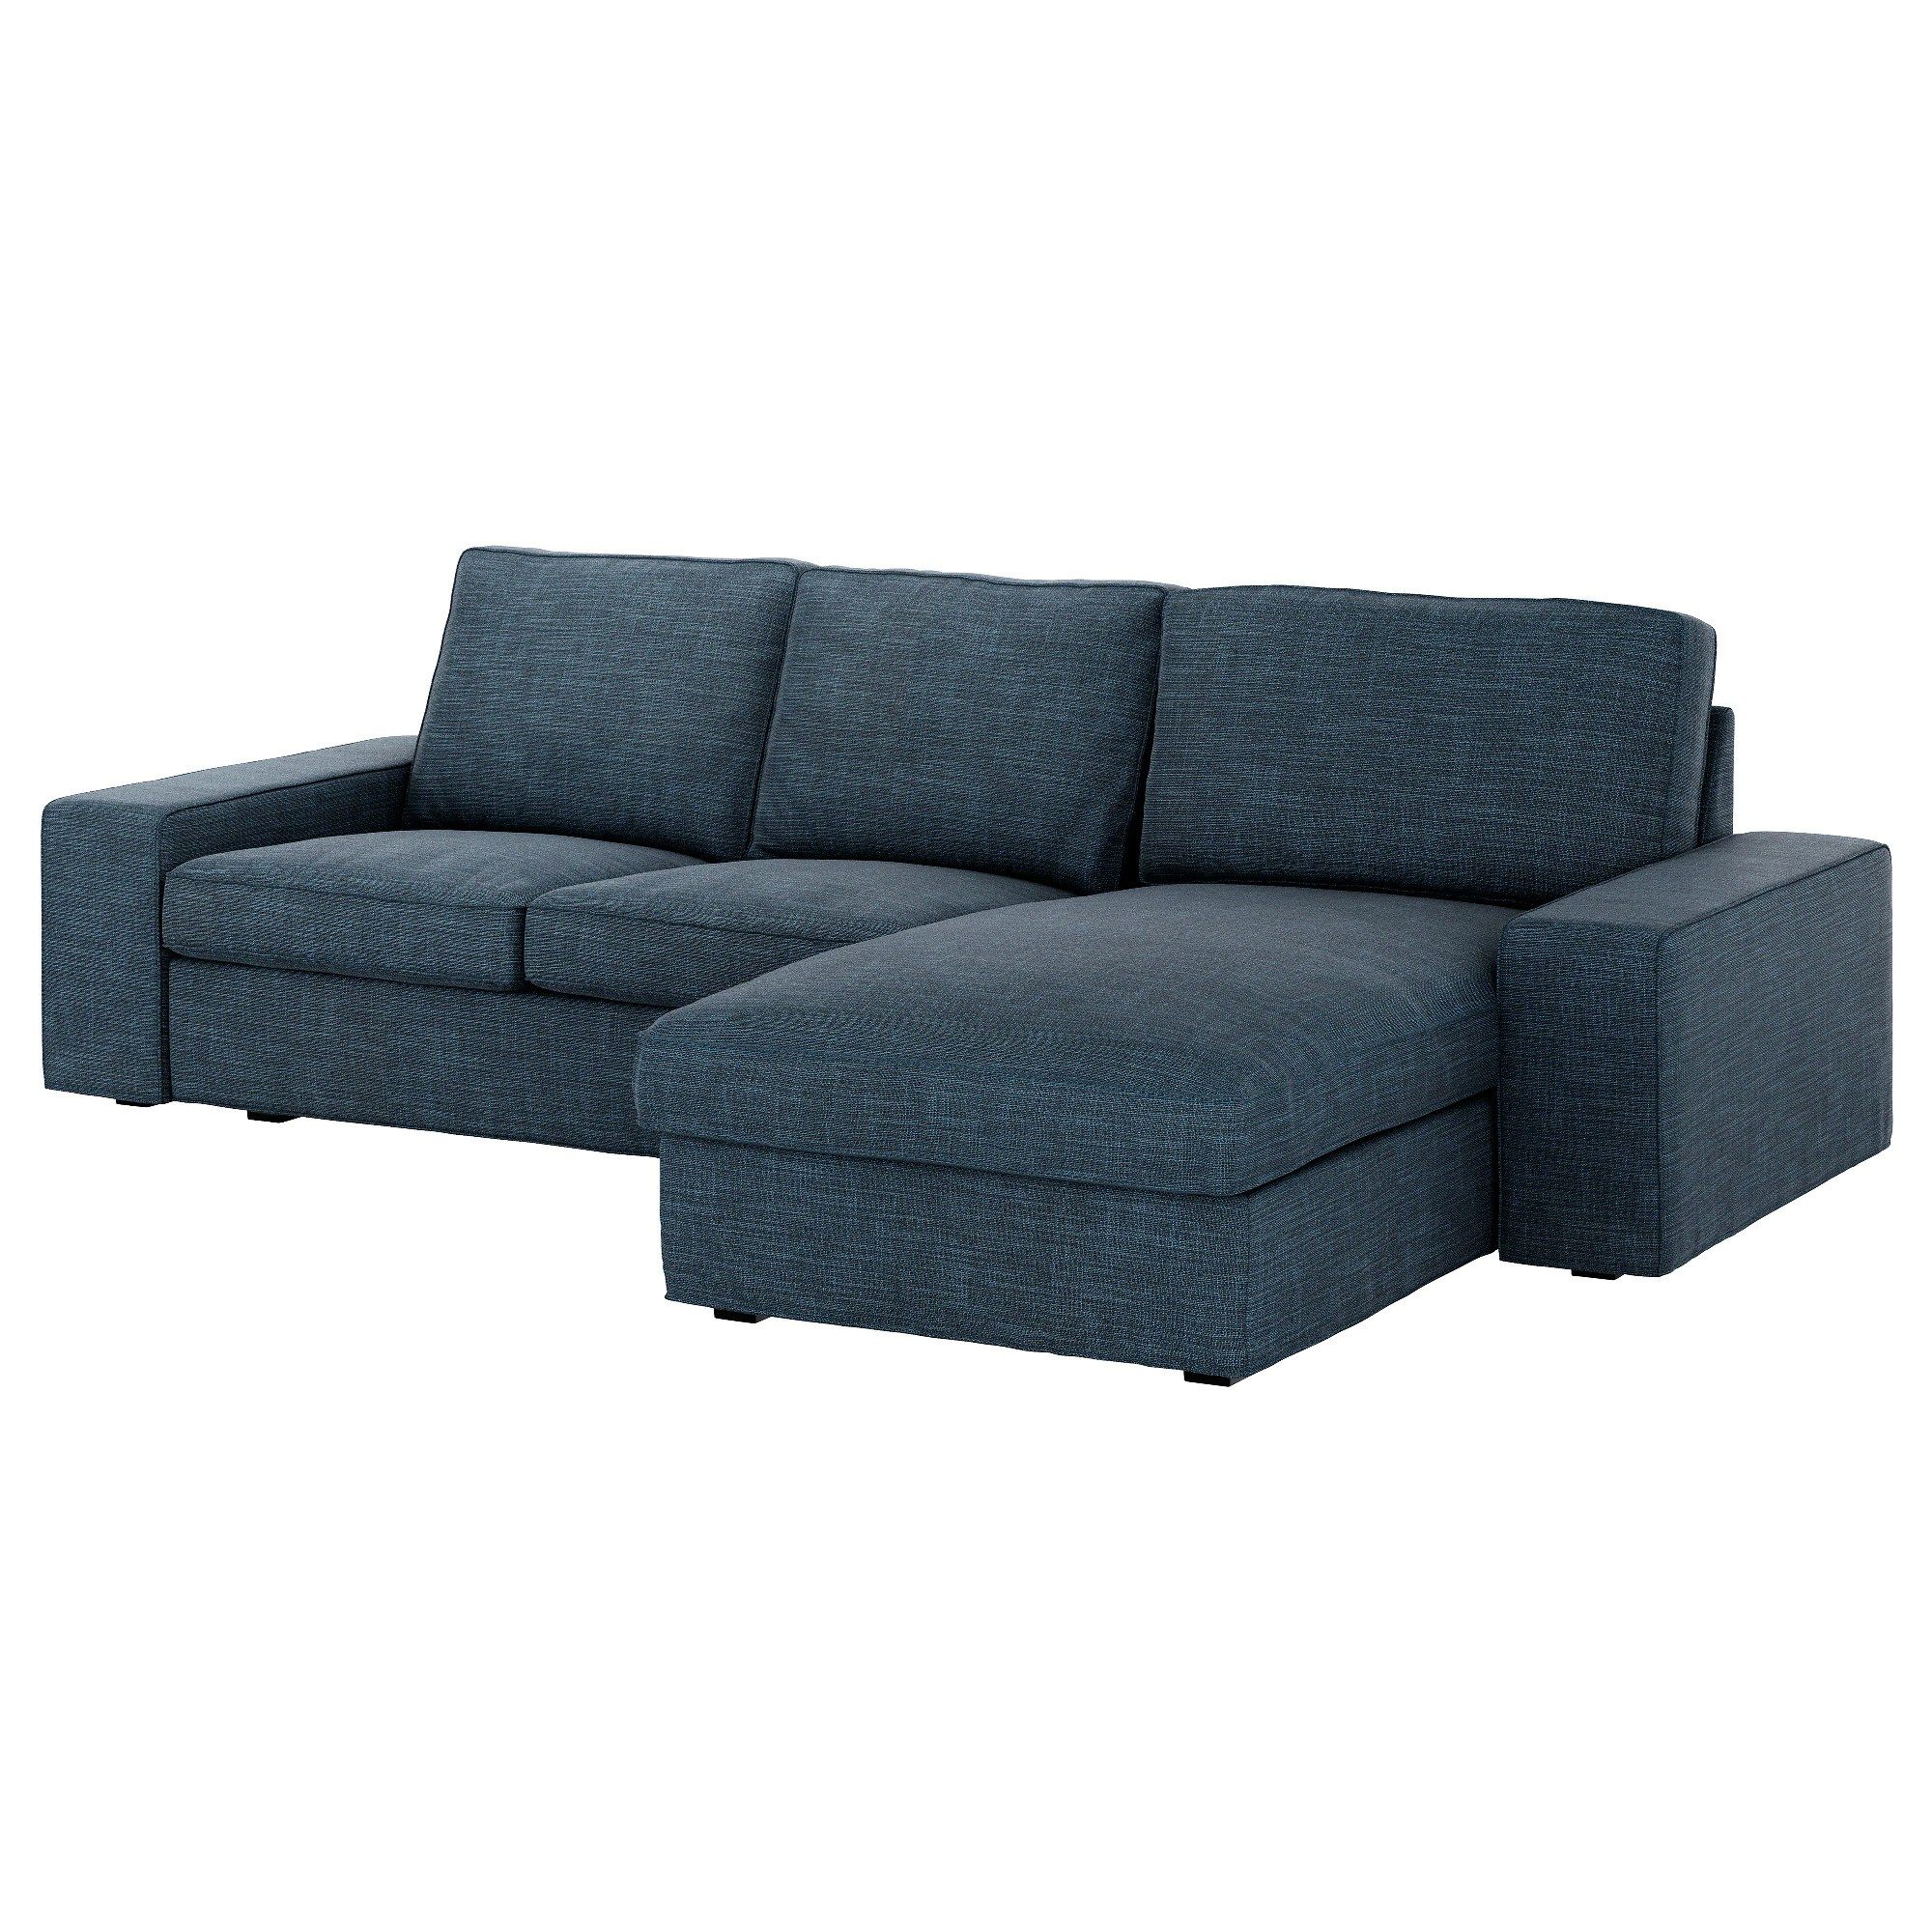 Ikea Kivik Sofa Kivik Sofa Hillared With Chaise Hillared Dark Blue